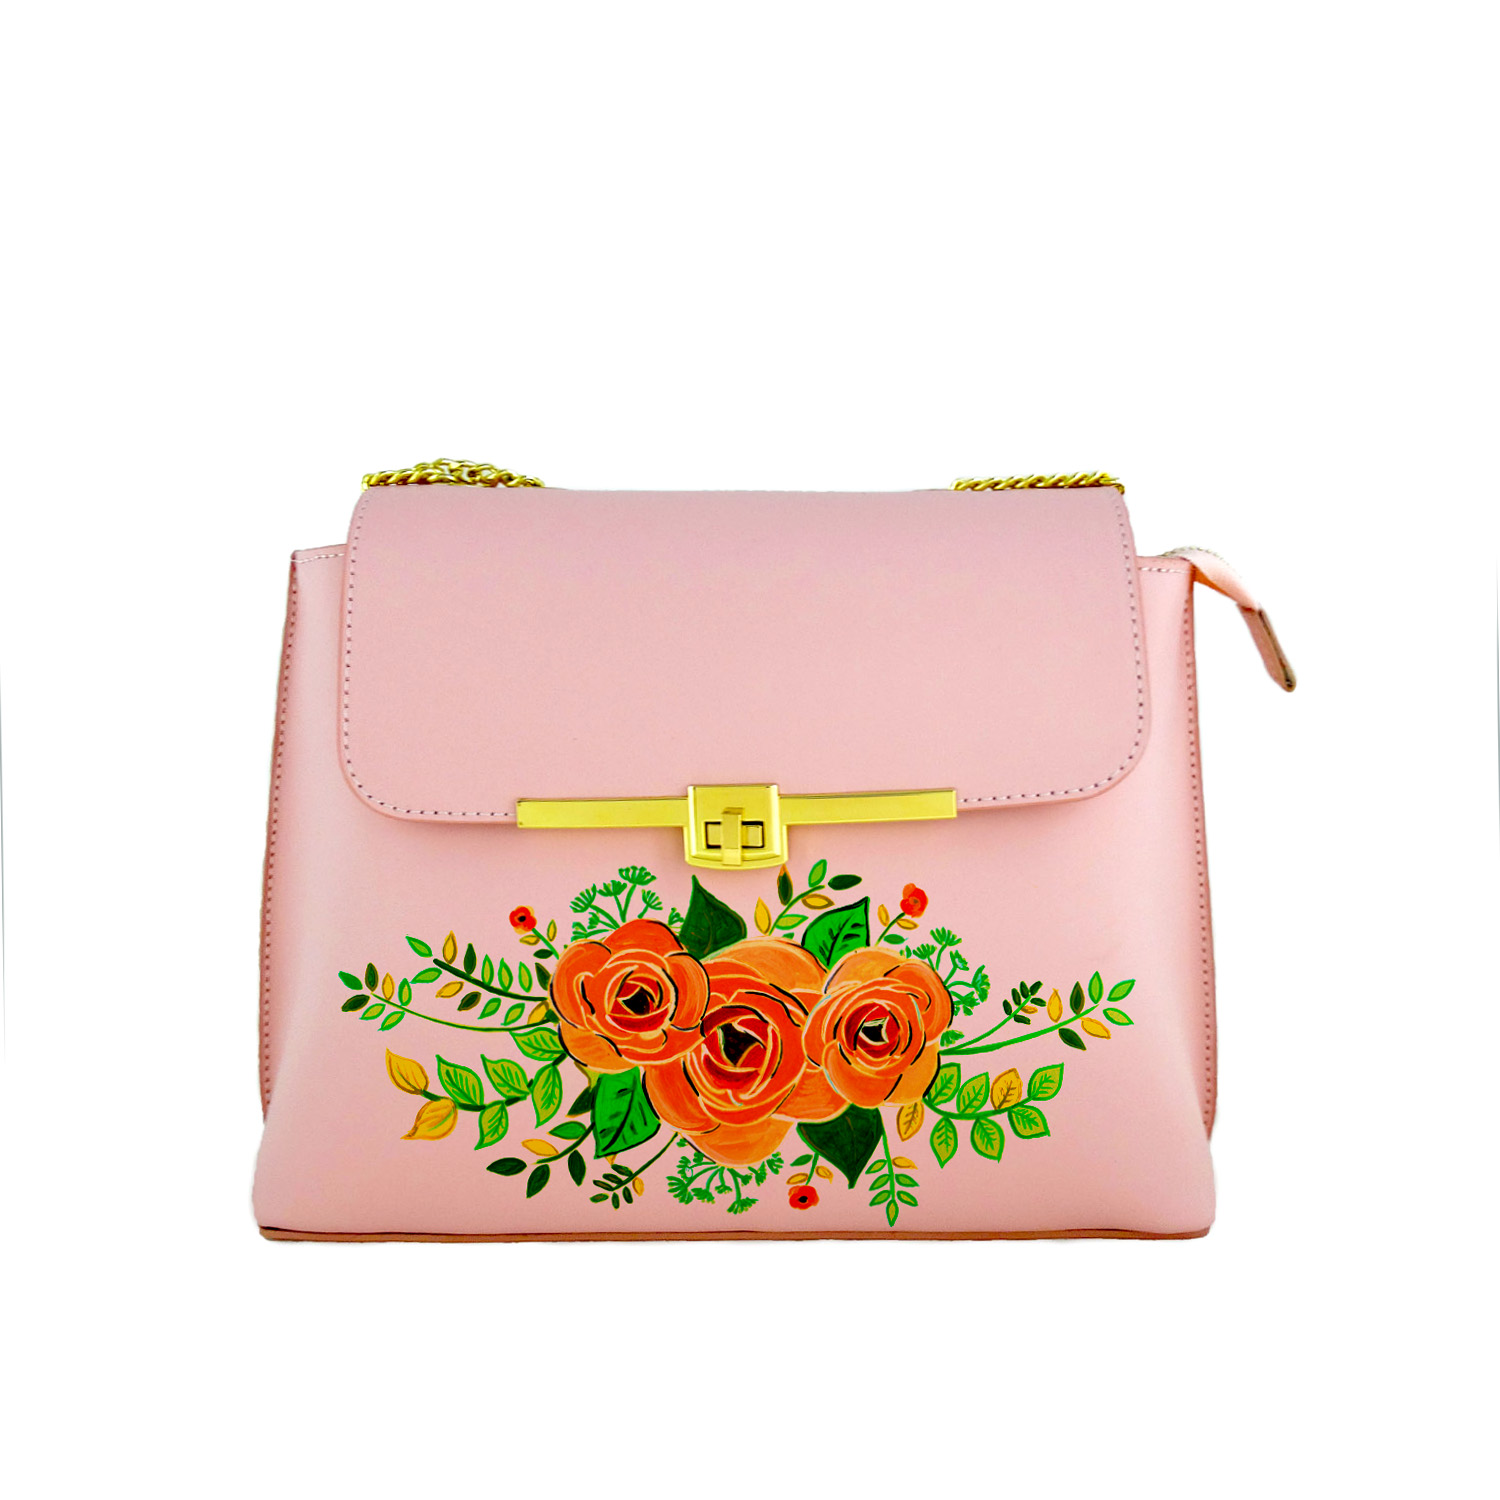 Handpainted bag - Le chic rose